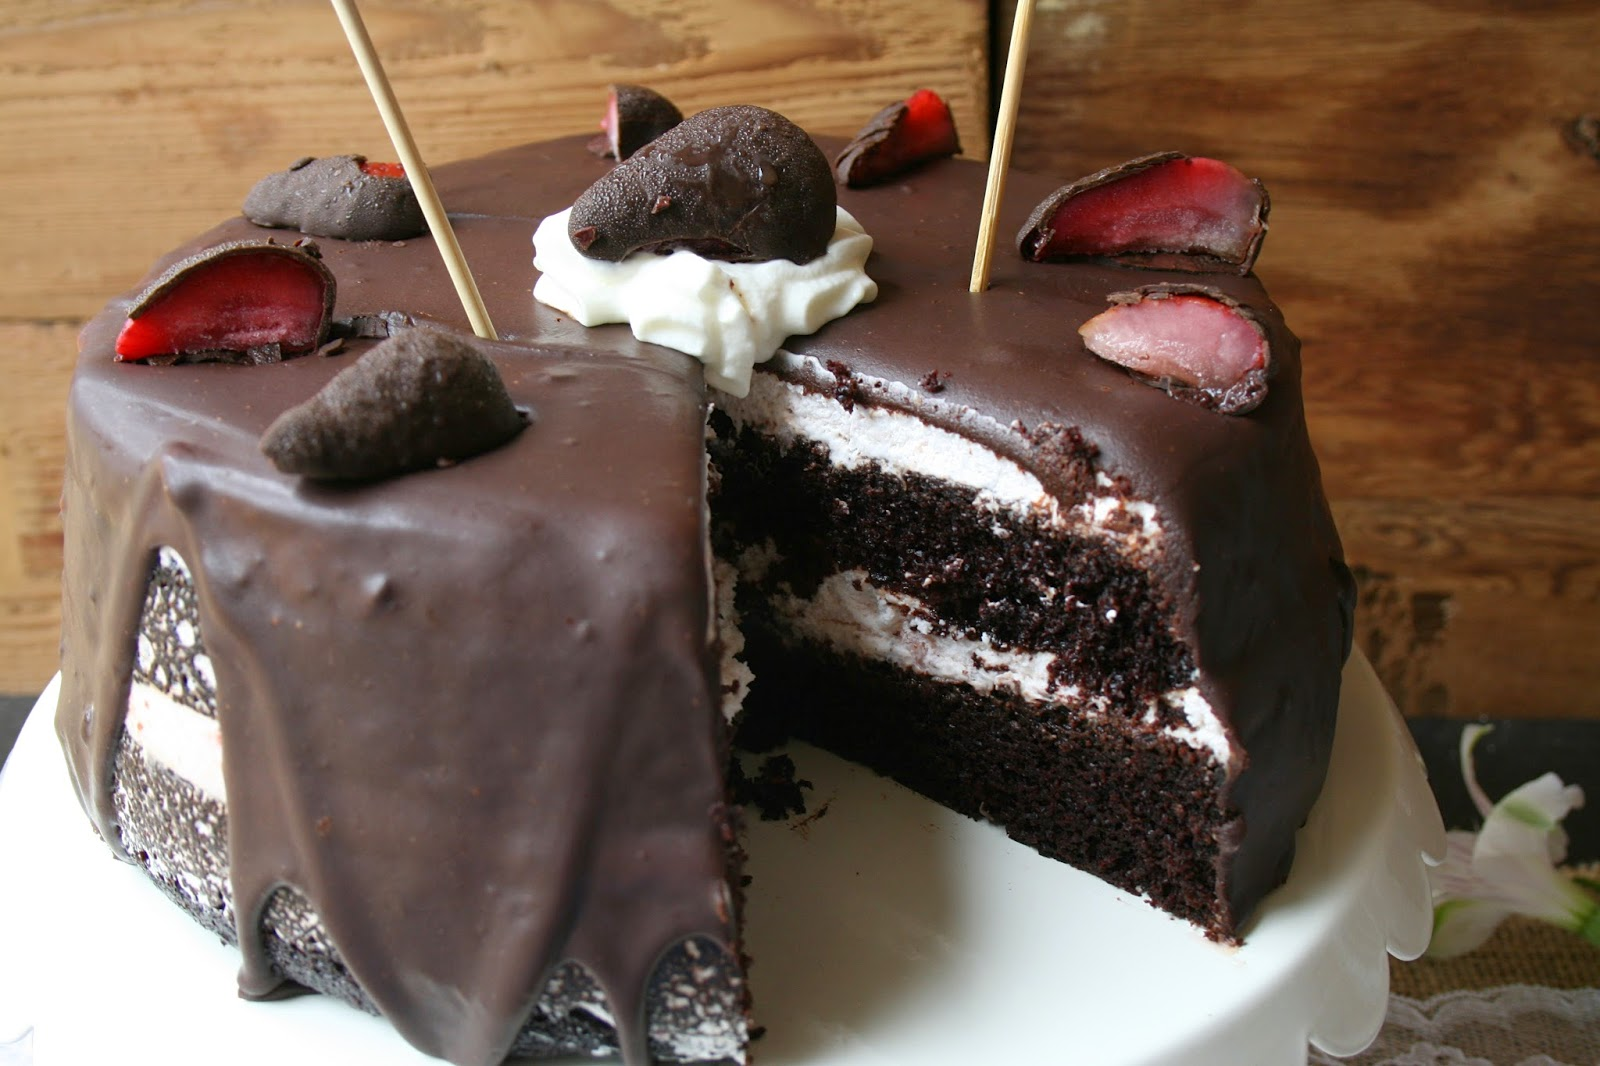 ... Dark Chocolate Cake with Strawberry Mousse Filling & Chocolate Ganache